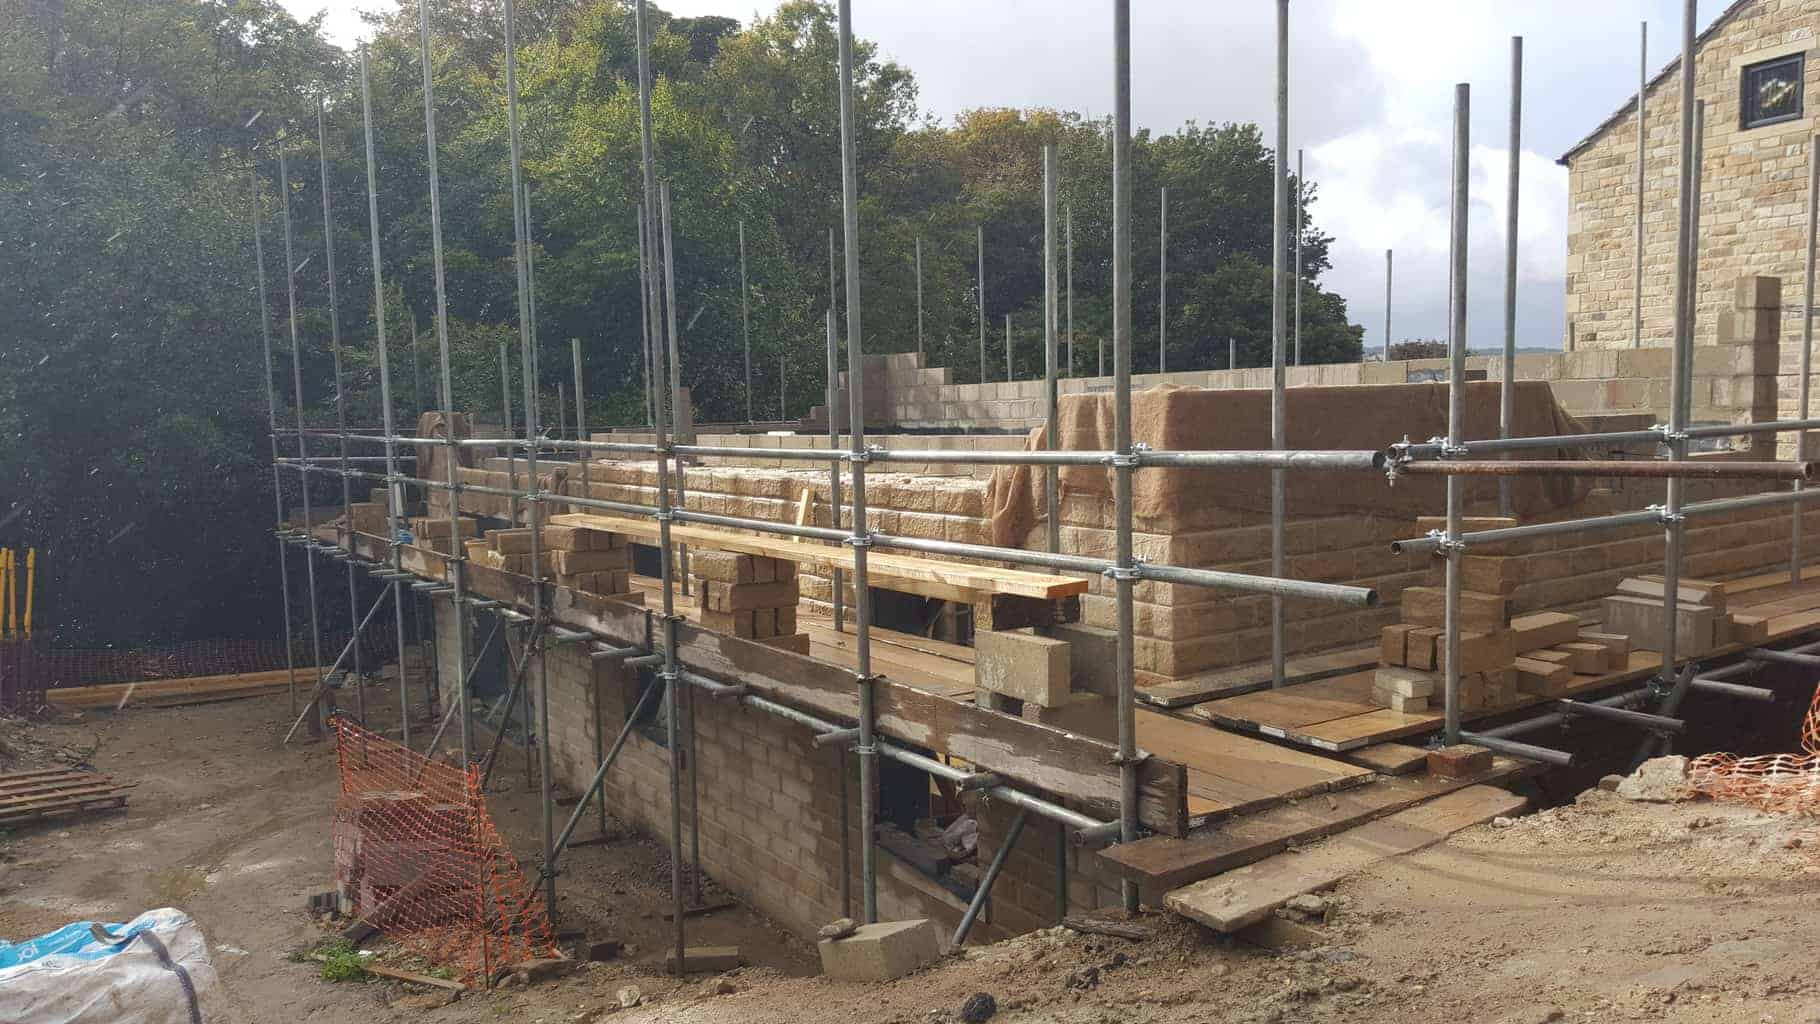 Kirkburton Passivhaus under construction